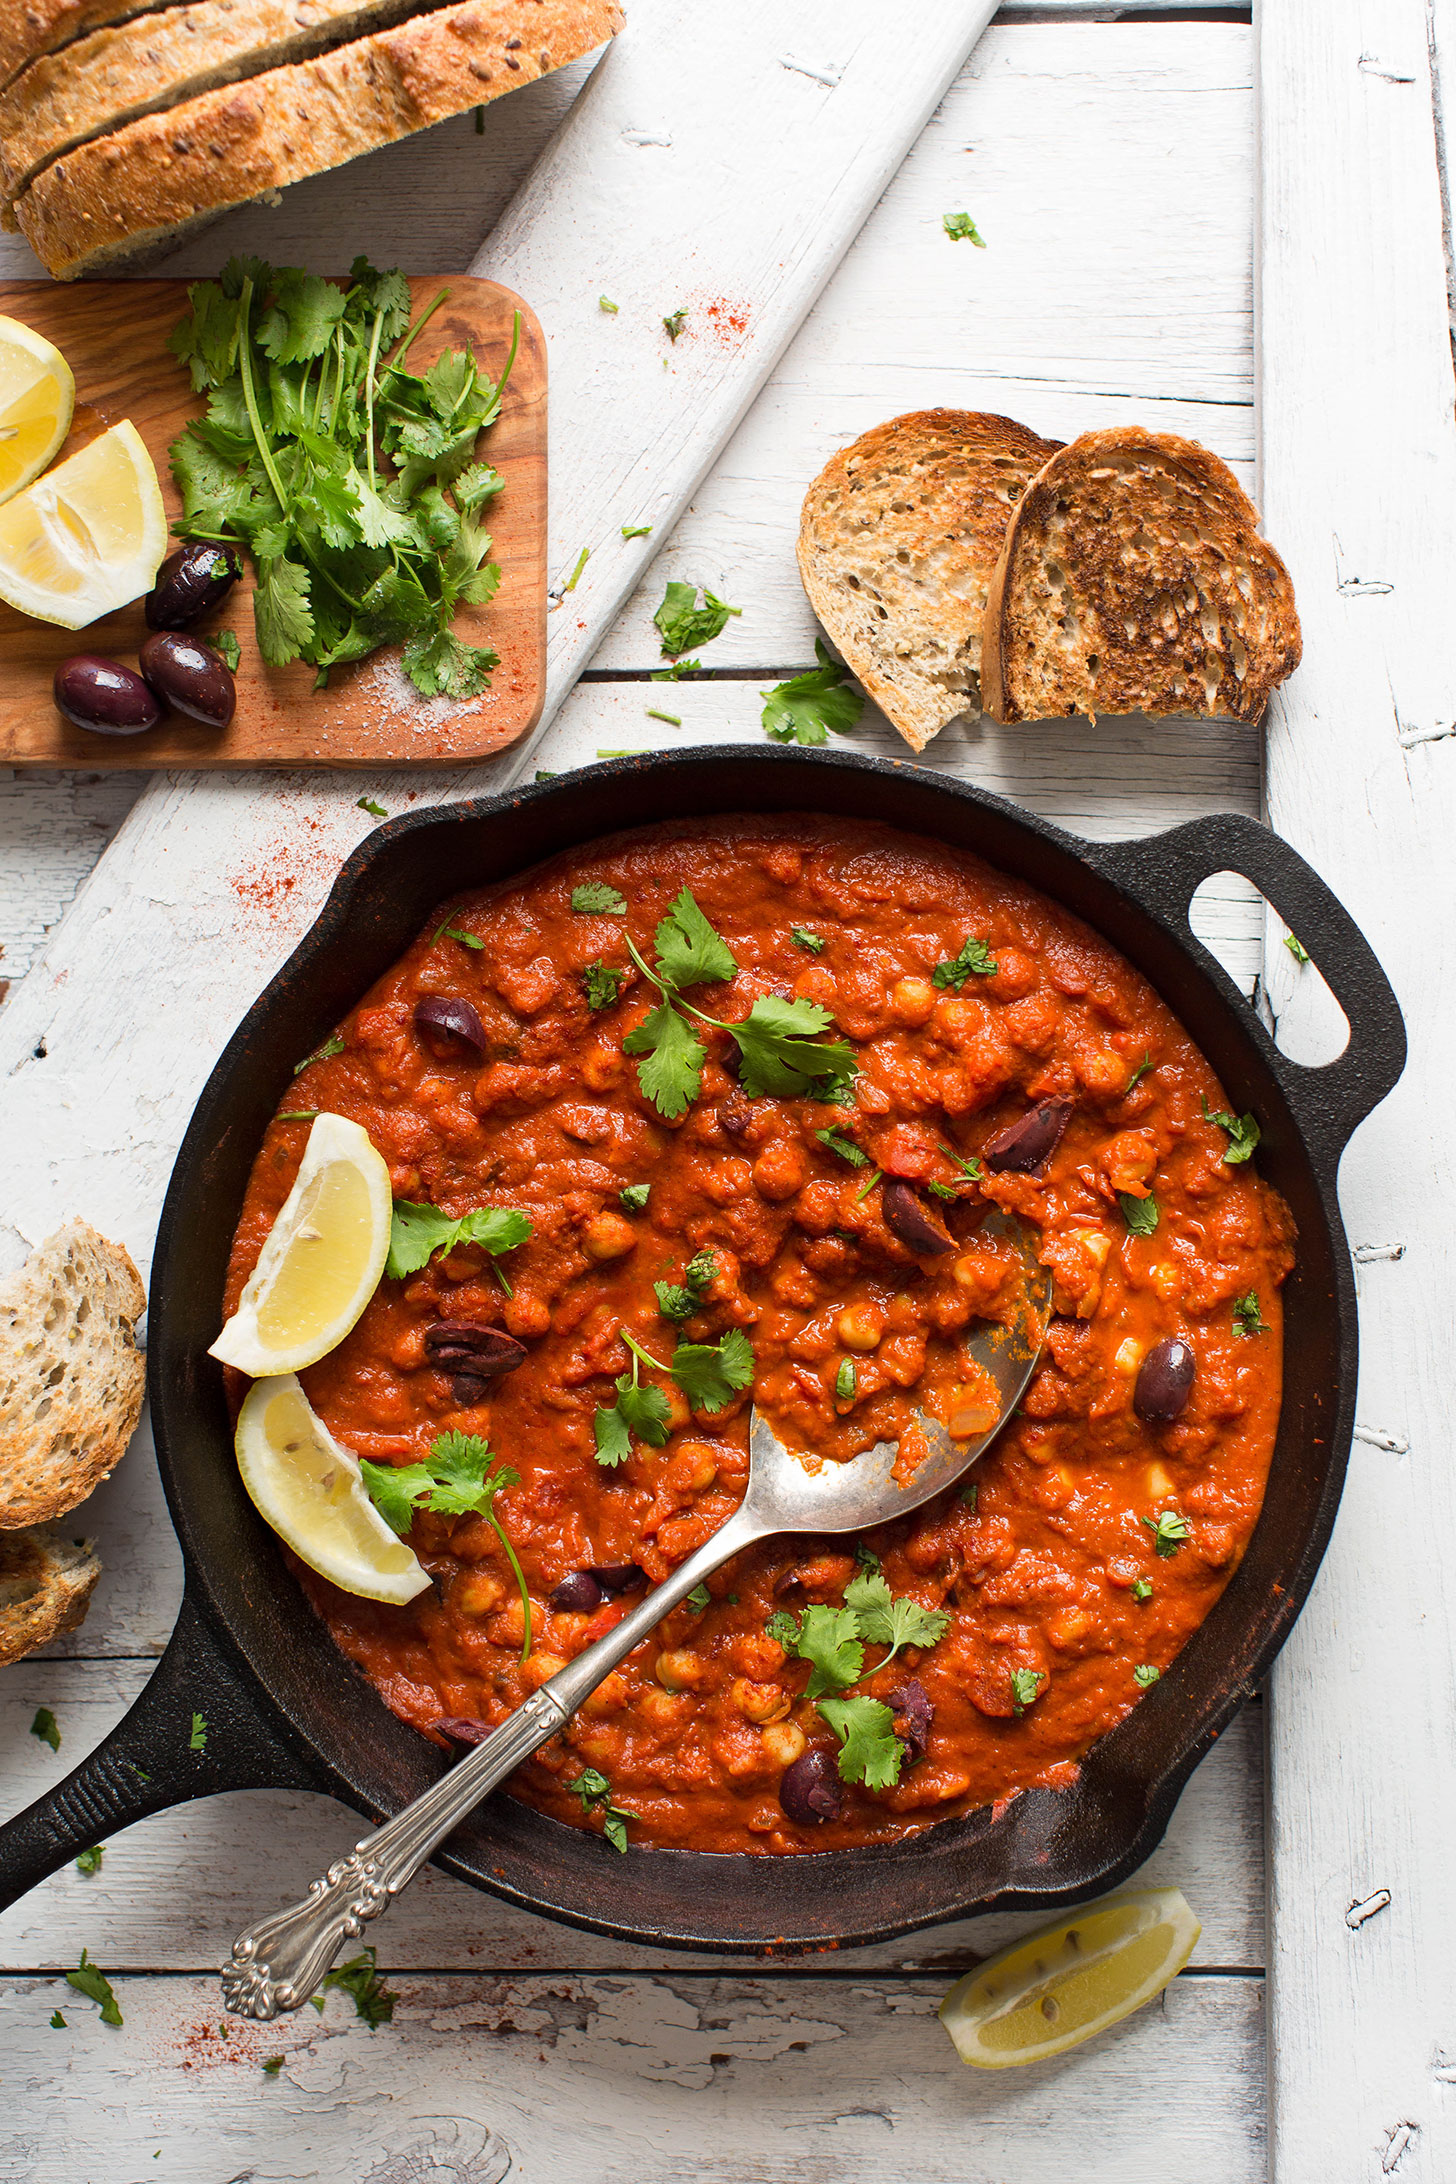 Amazing 1-pot gluten-free vegan meal of Chickpea Shakshuka